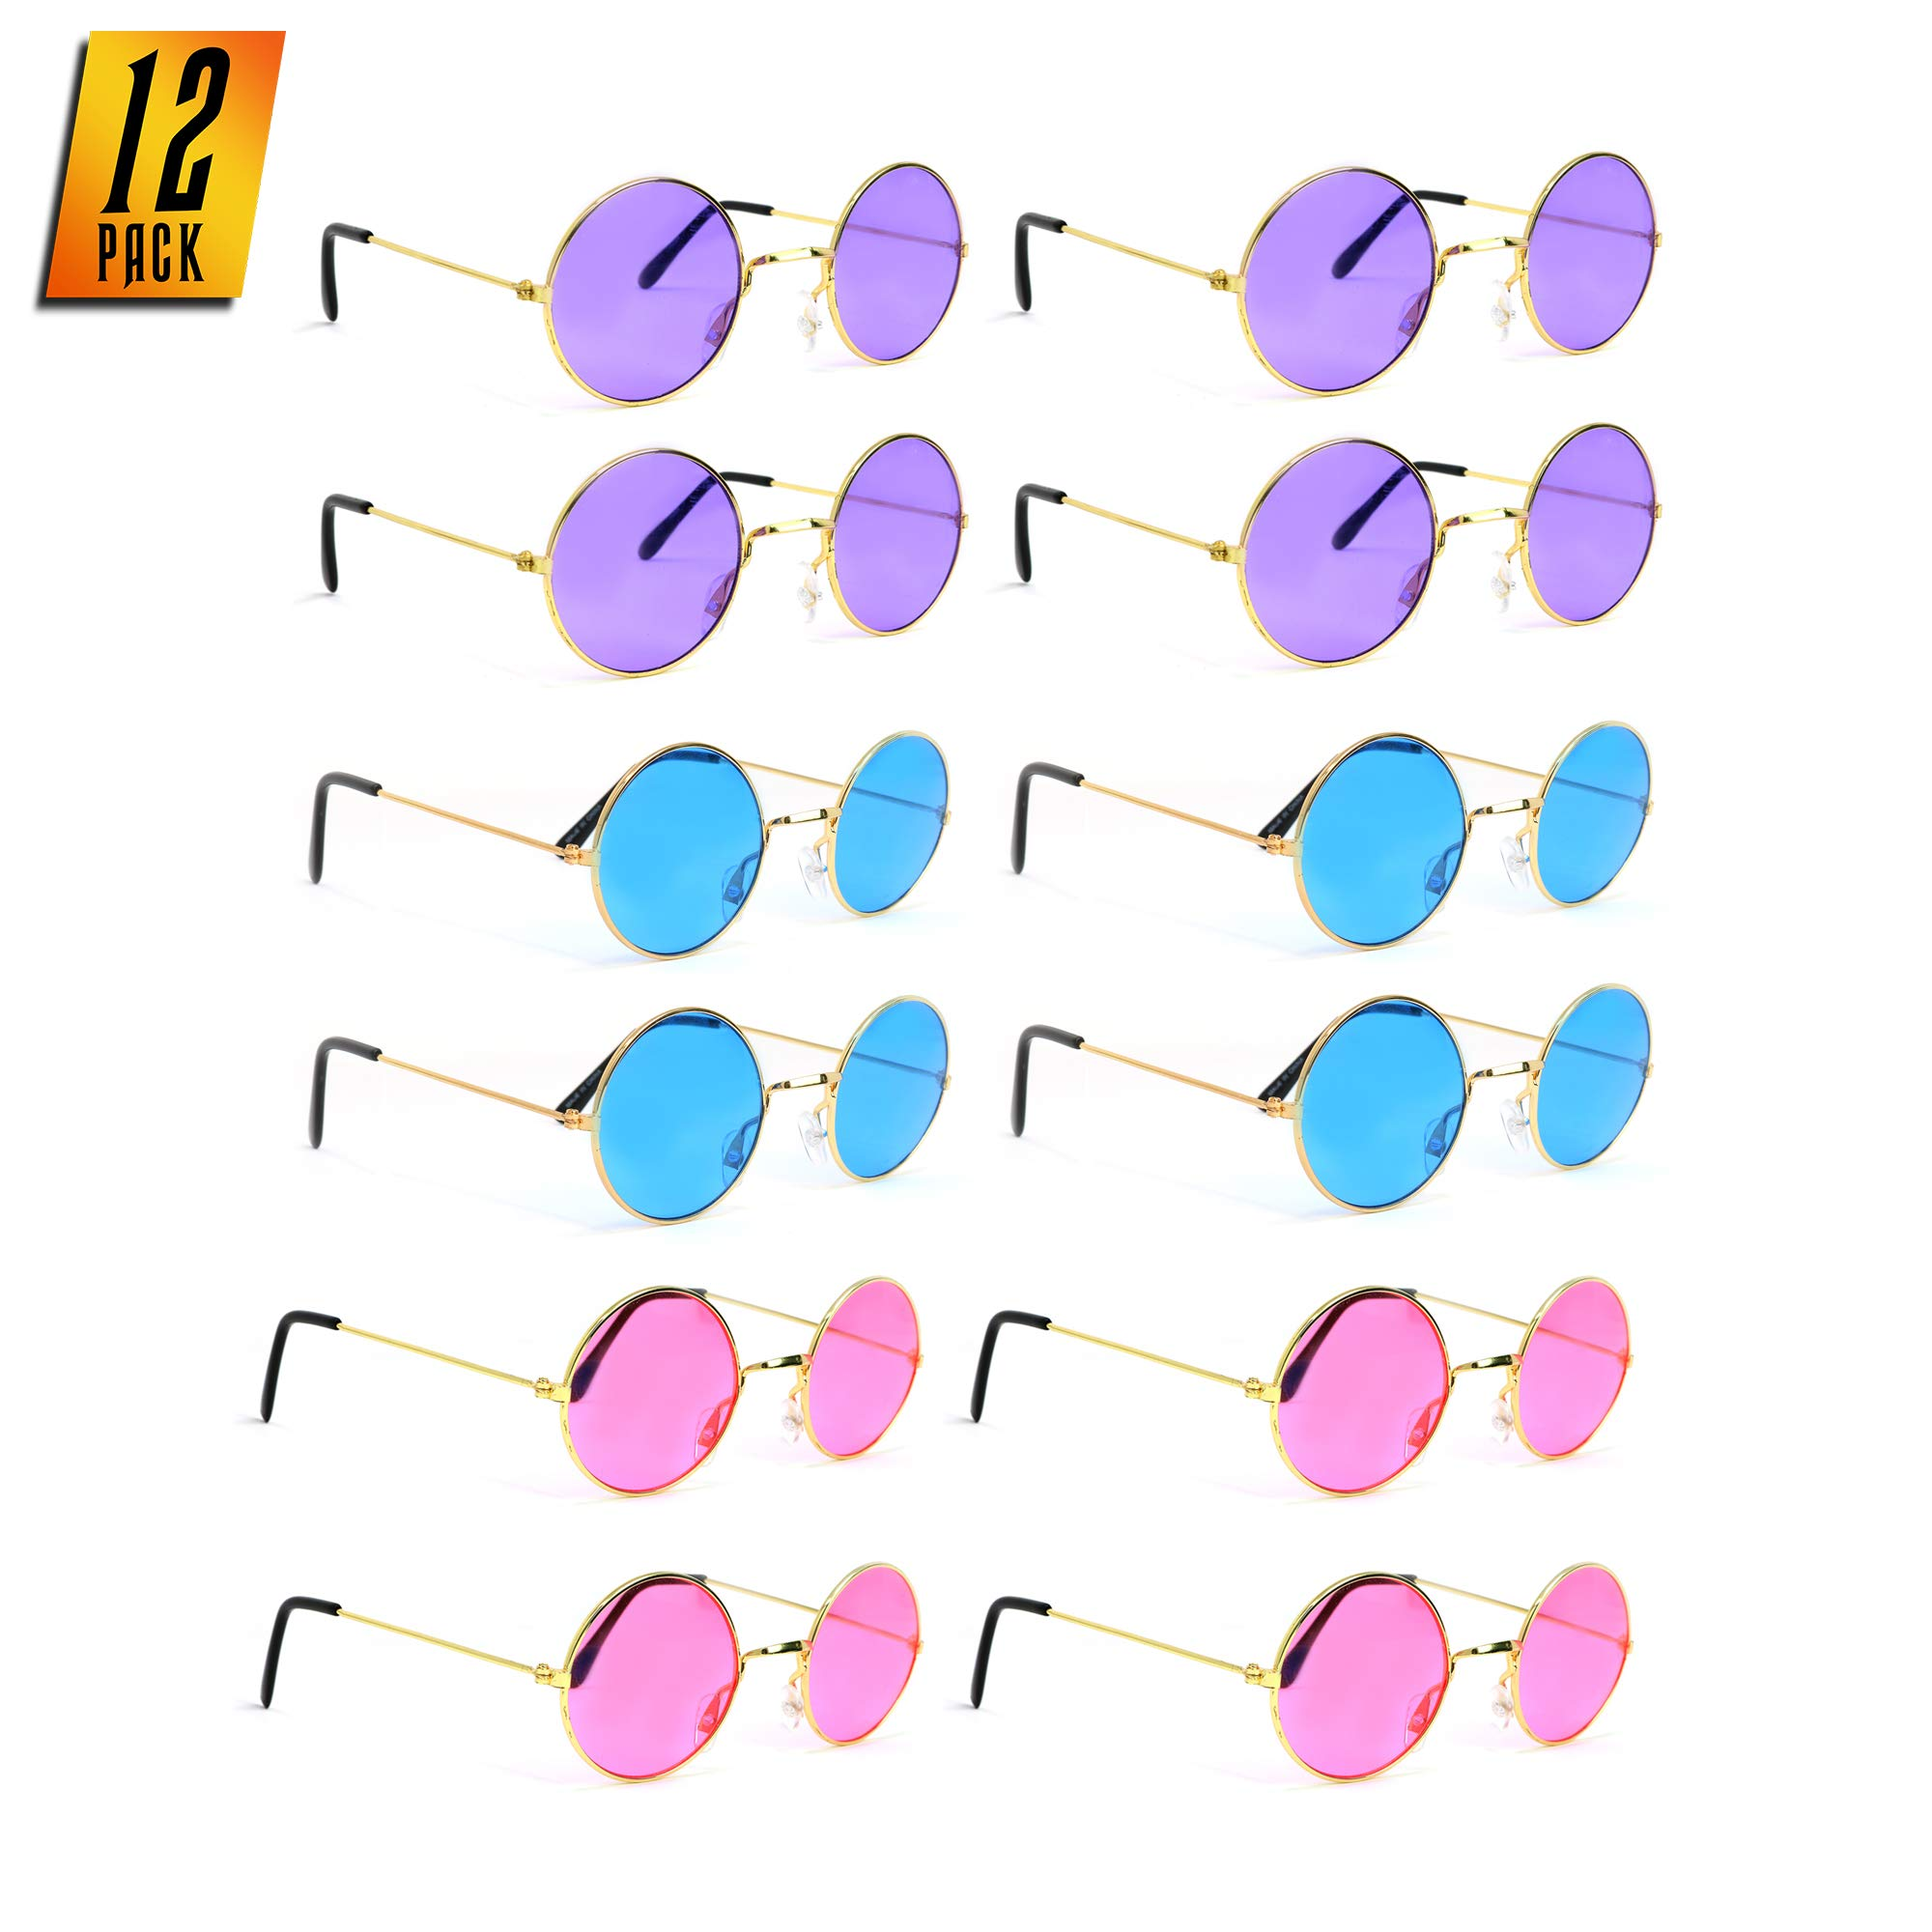 Skeleteen John Lennon Hippie Sunglasses – Pink Purple and Blue 60's Style Circle Glasses Favors - 12 Pairs